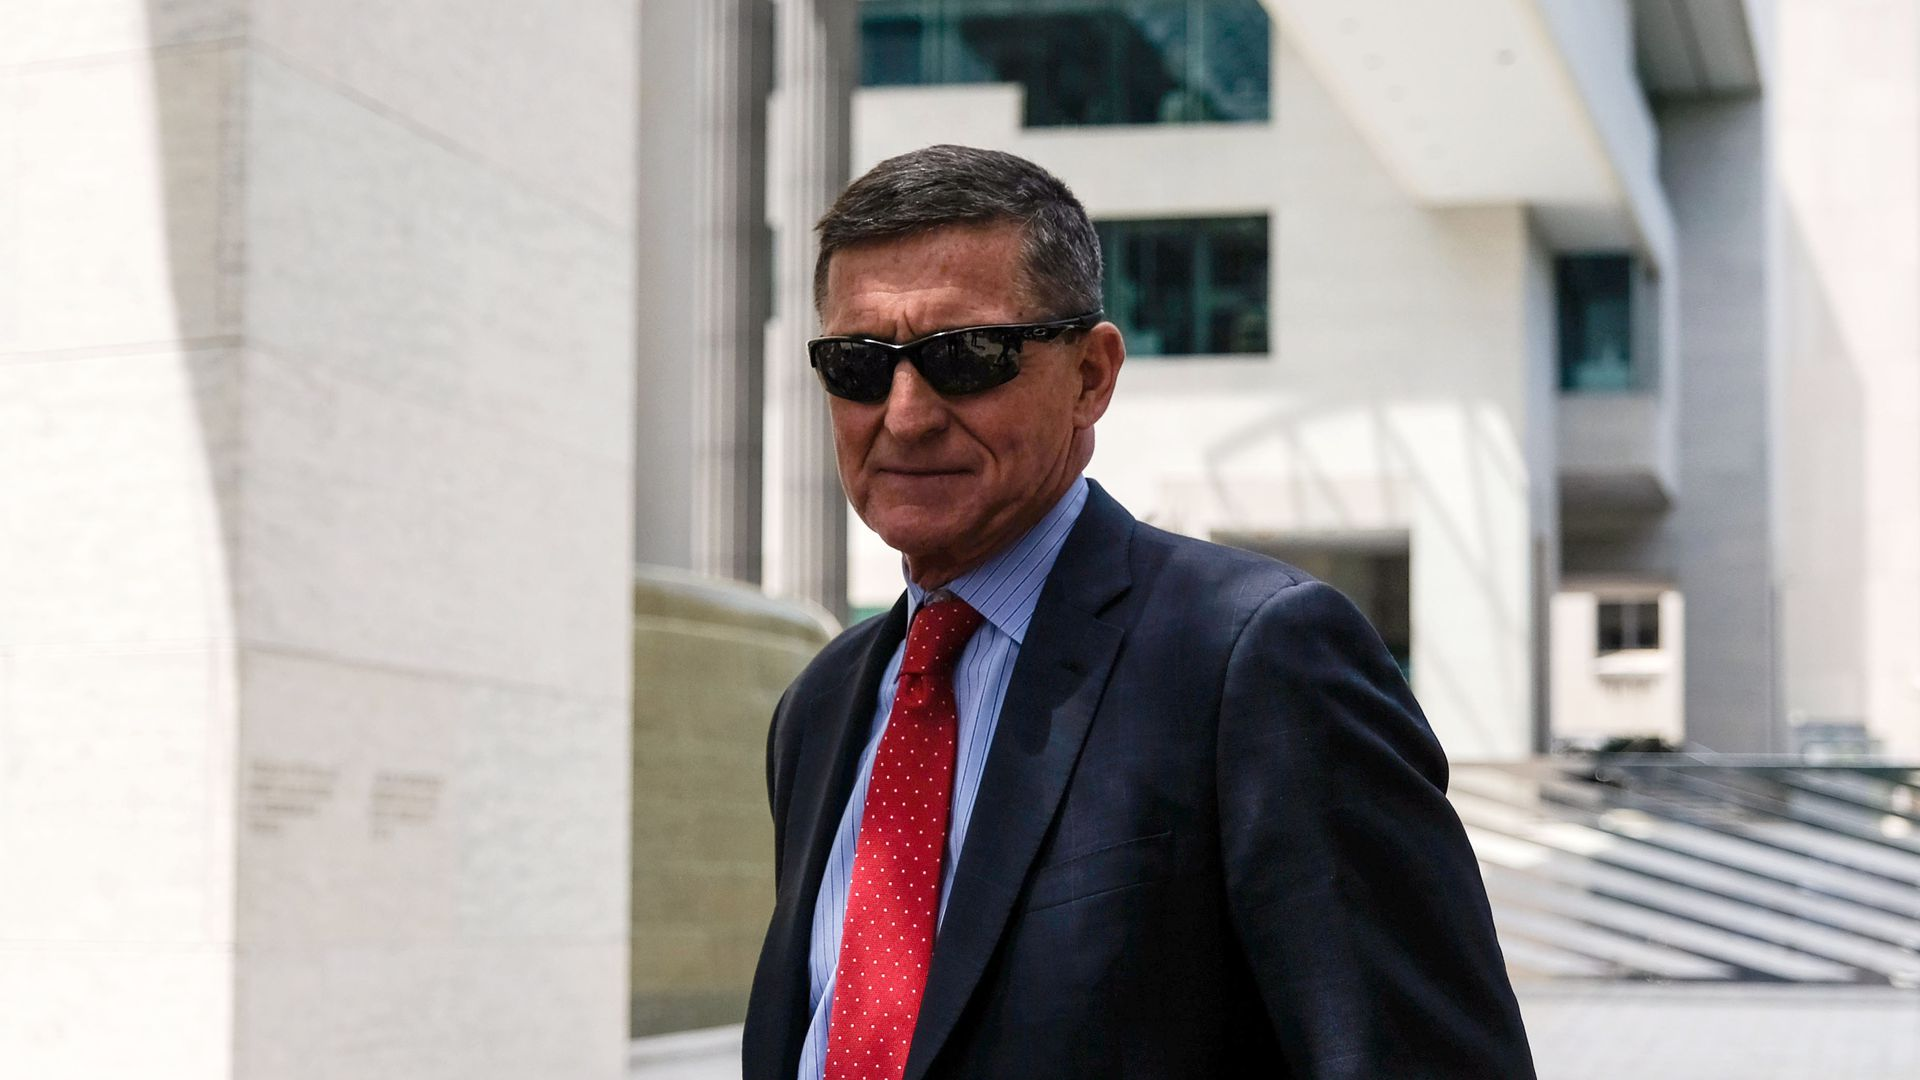 Ex-Trump adviser Michael Flynn deserves to be jailed, prosecutors say